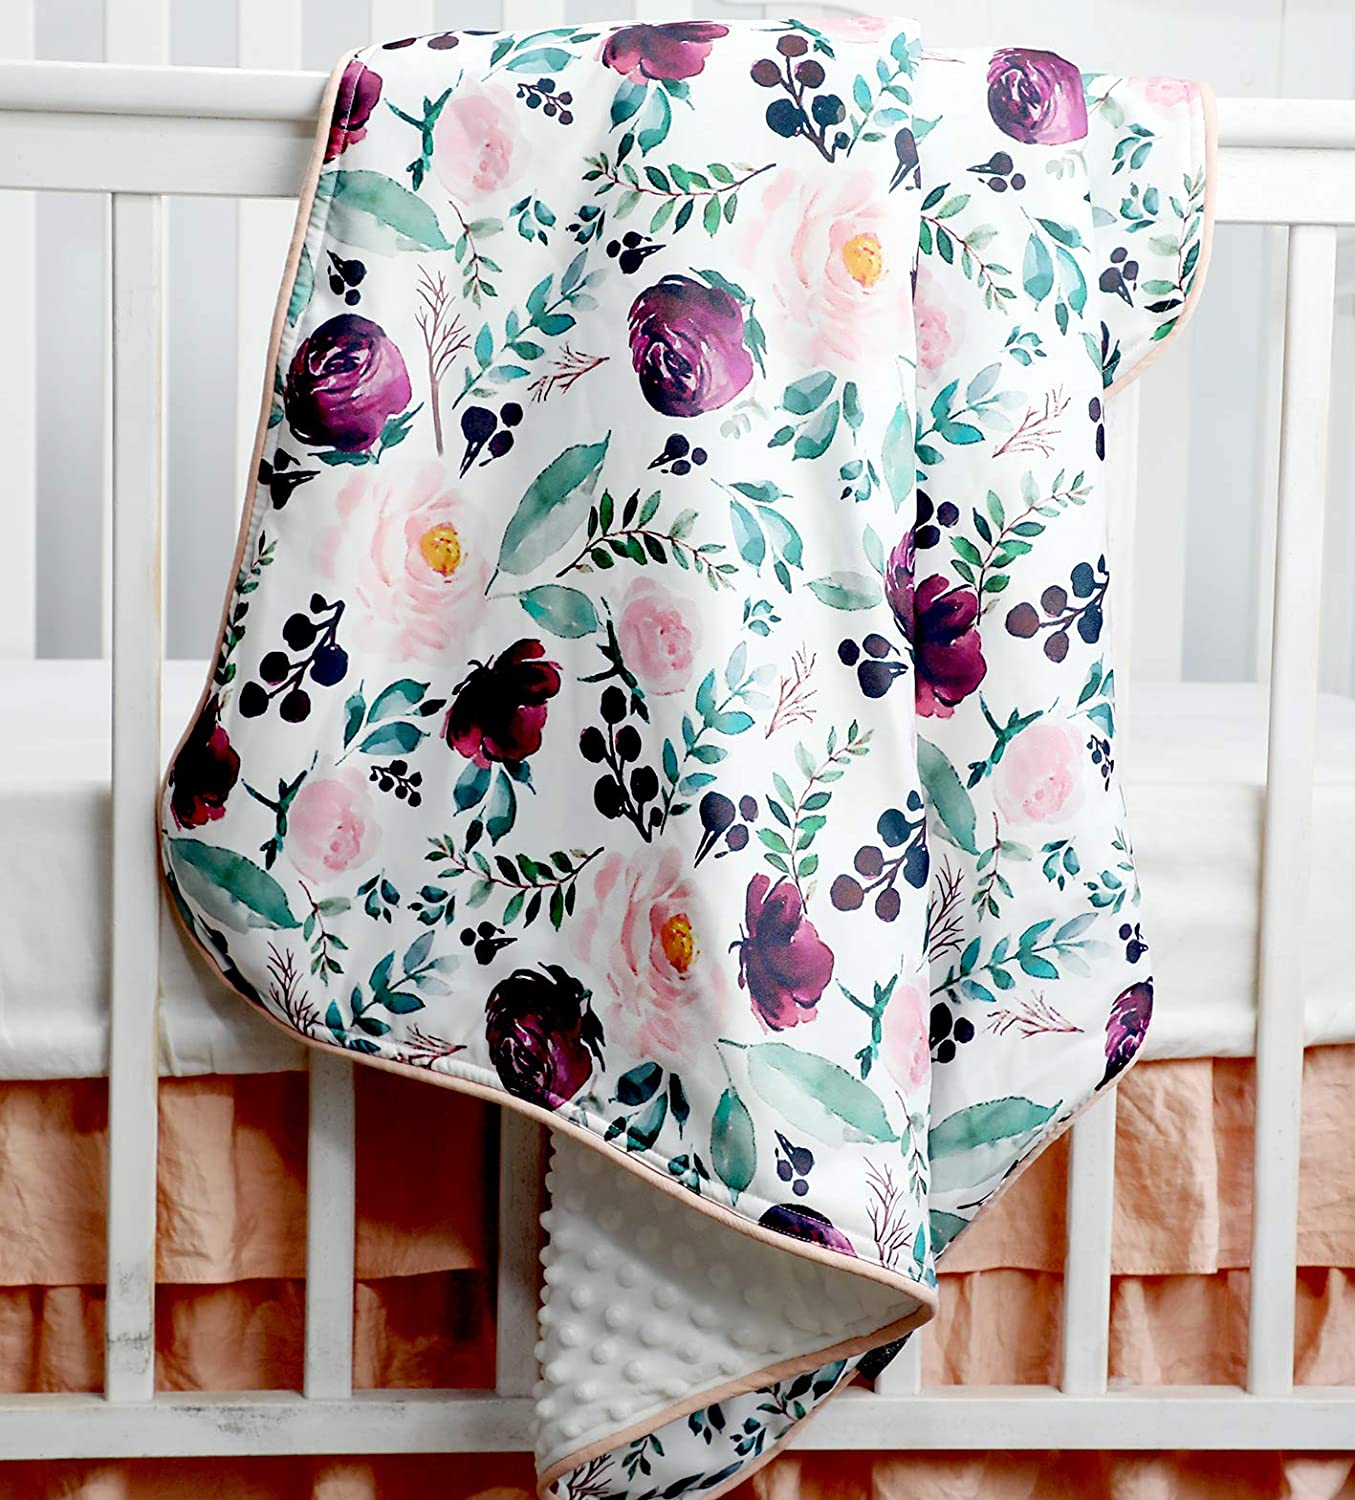 Sahaler Succulents Cactus Floral Baby Minky Blanket Baby Girl Crib Comforter Toddle Quilt 34x42inch (Pink Wine Floral)